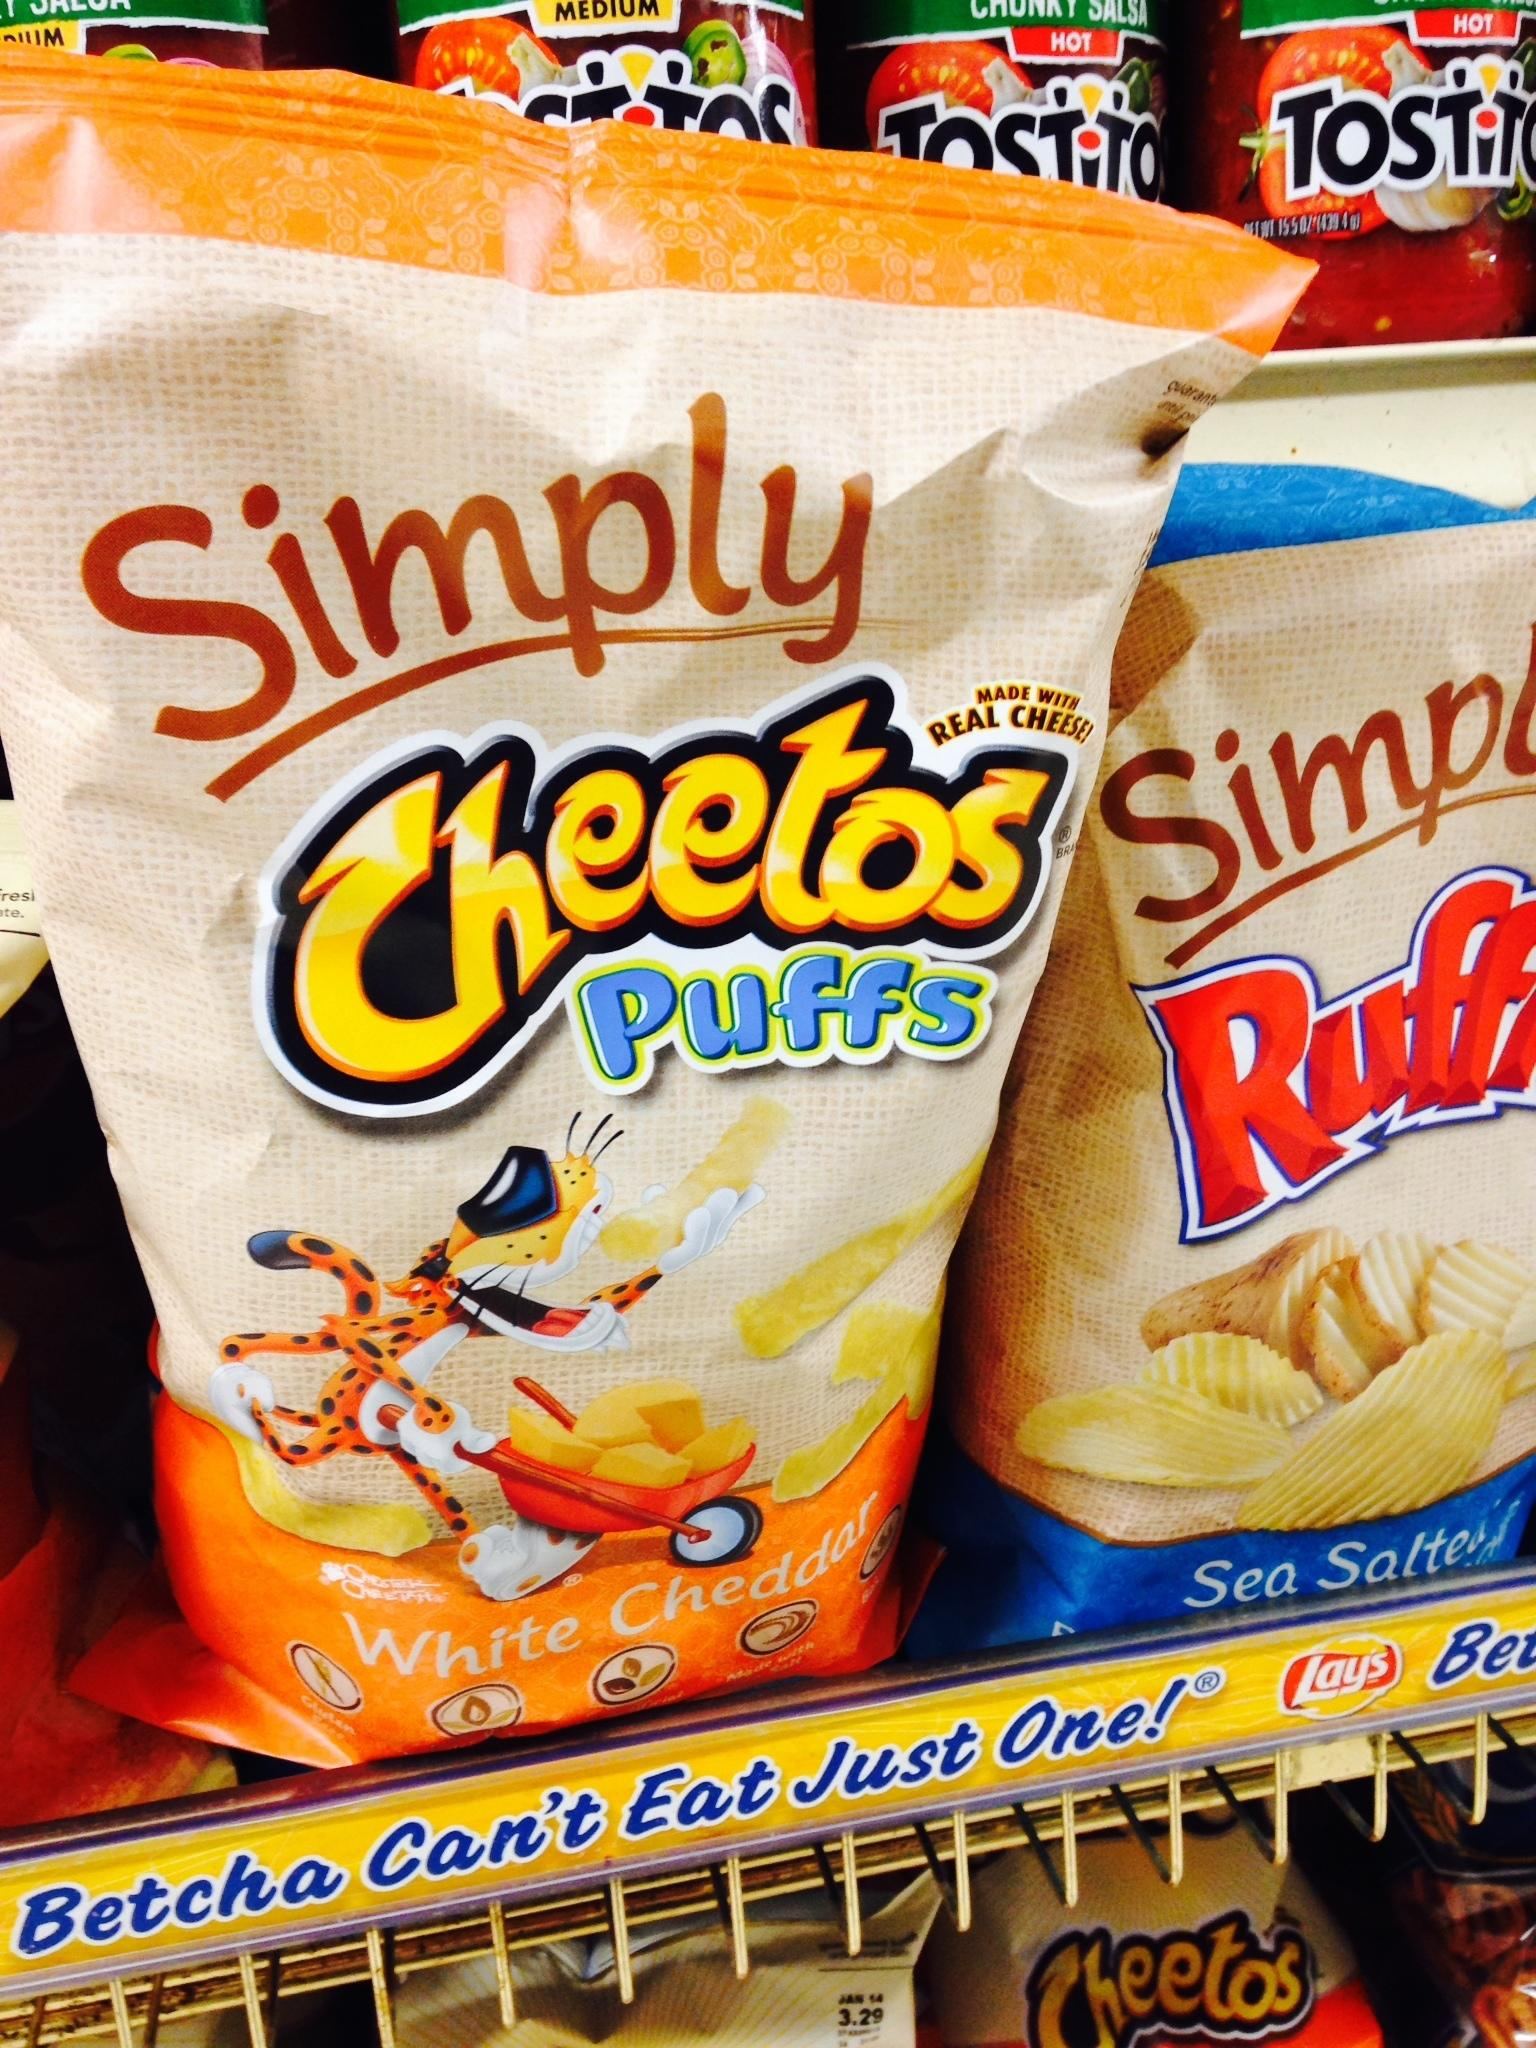 pop-up cheetos-themed restaurant to open in new york city | the